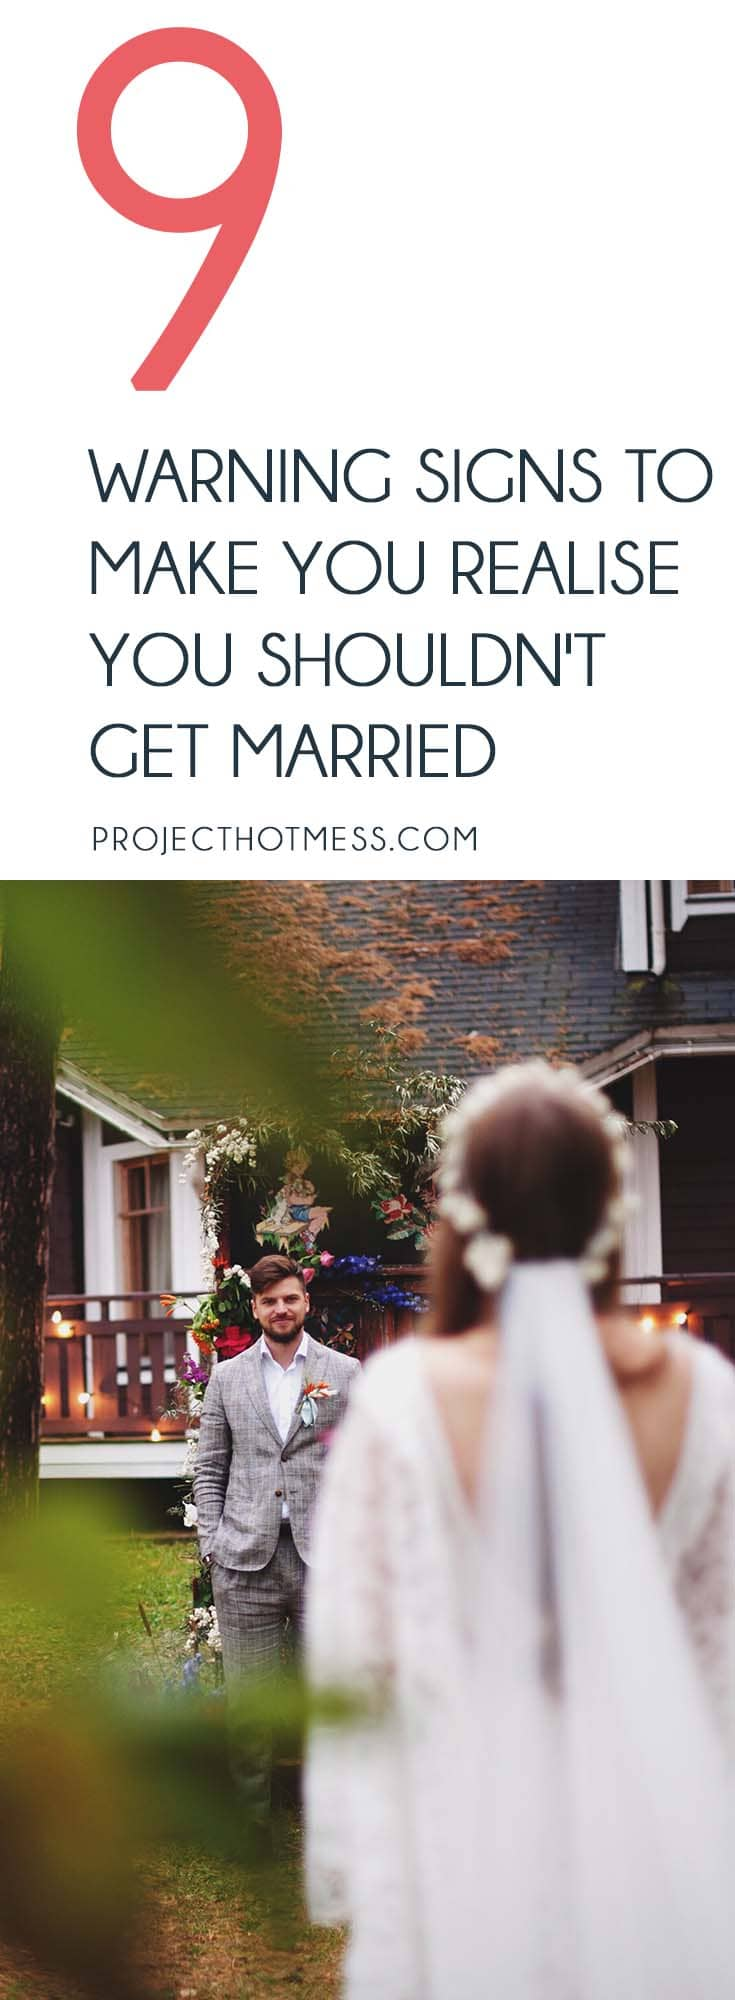 Ever get that feeling that things in your relationship aren't quite right and maybe you shouldn't get married? Keep an eye out for these warning signs.